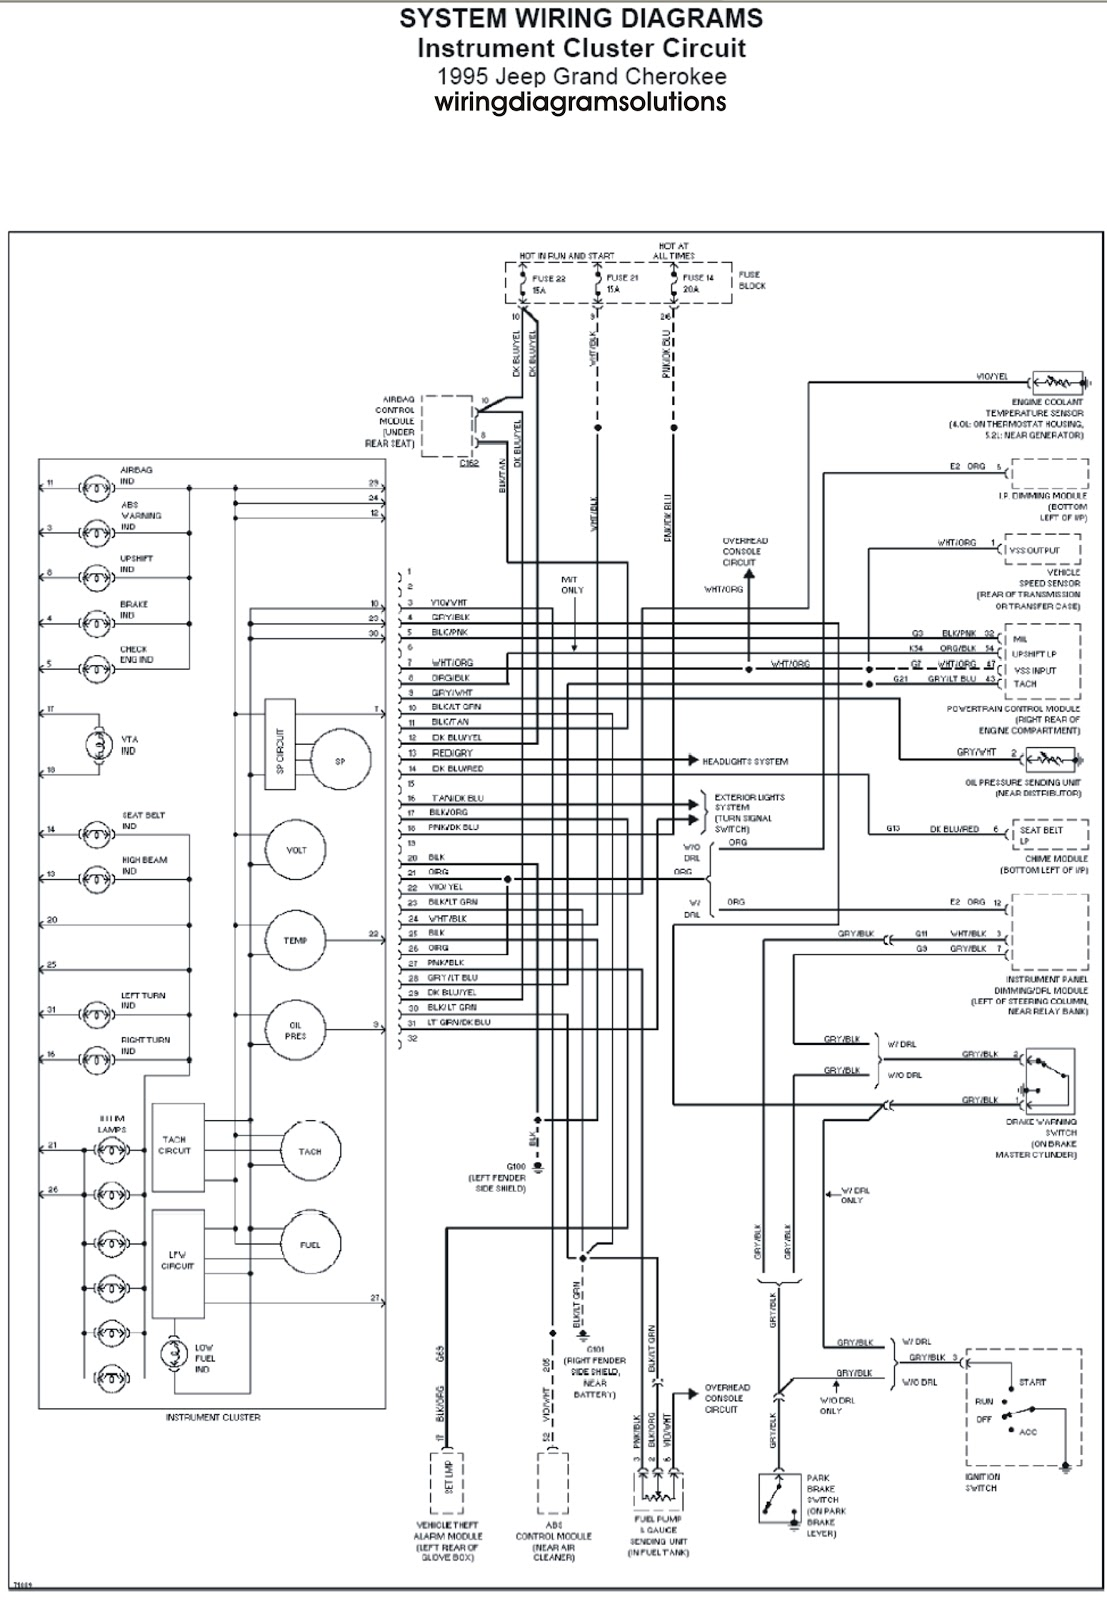 [DIAGRAM_3NM]  2BC Radio Wiring Diagram 1999 Jeep Cherokee | Wiring Library | 1993 Jeep Radio Wiring |  | Wiring Library